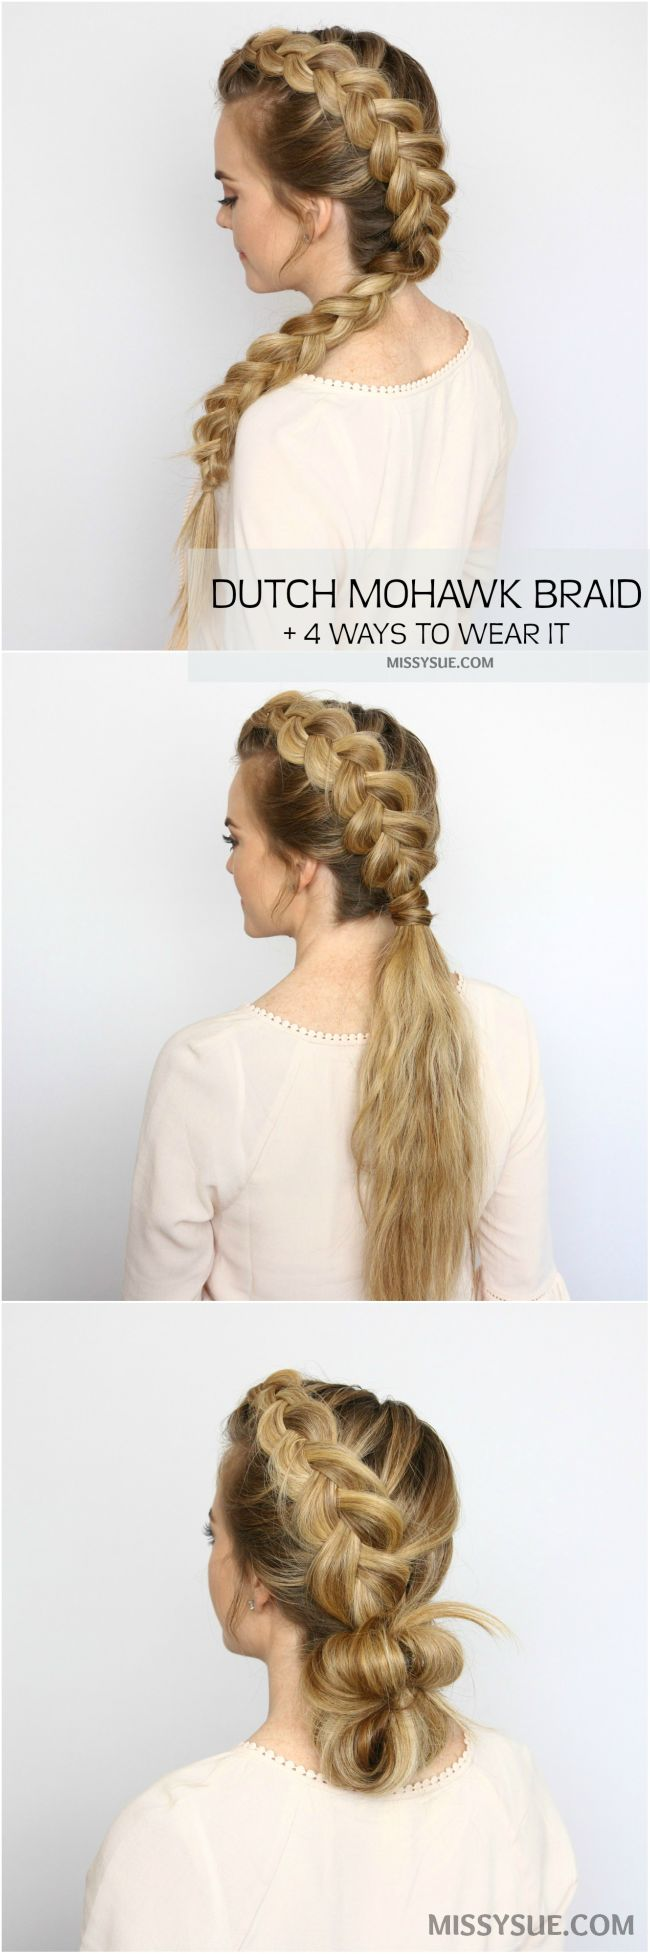 best hair ideas images on pinterest hair ideas hairstyle